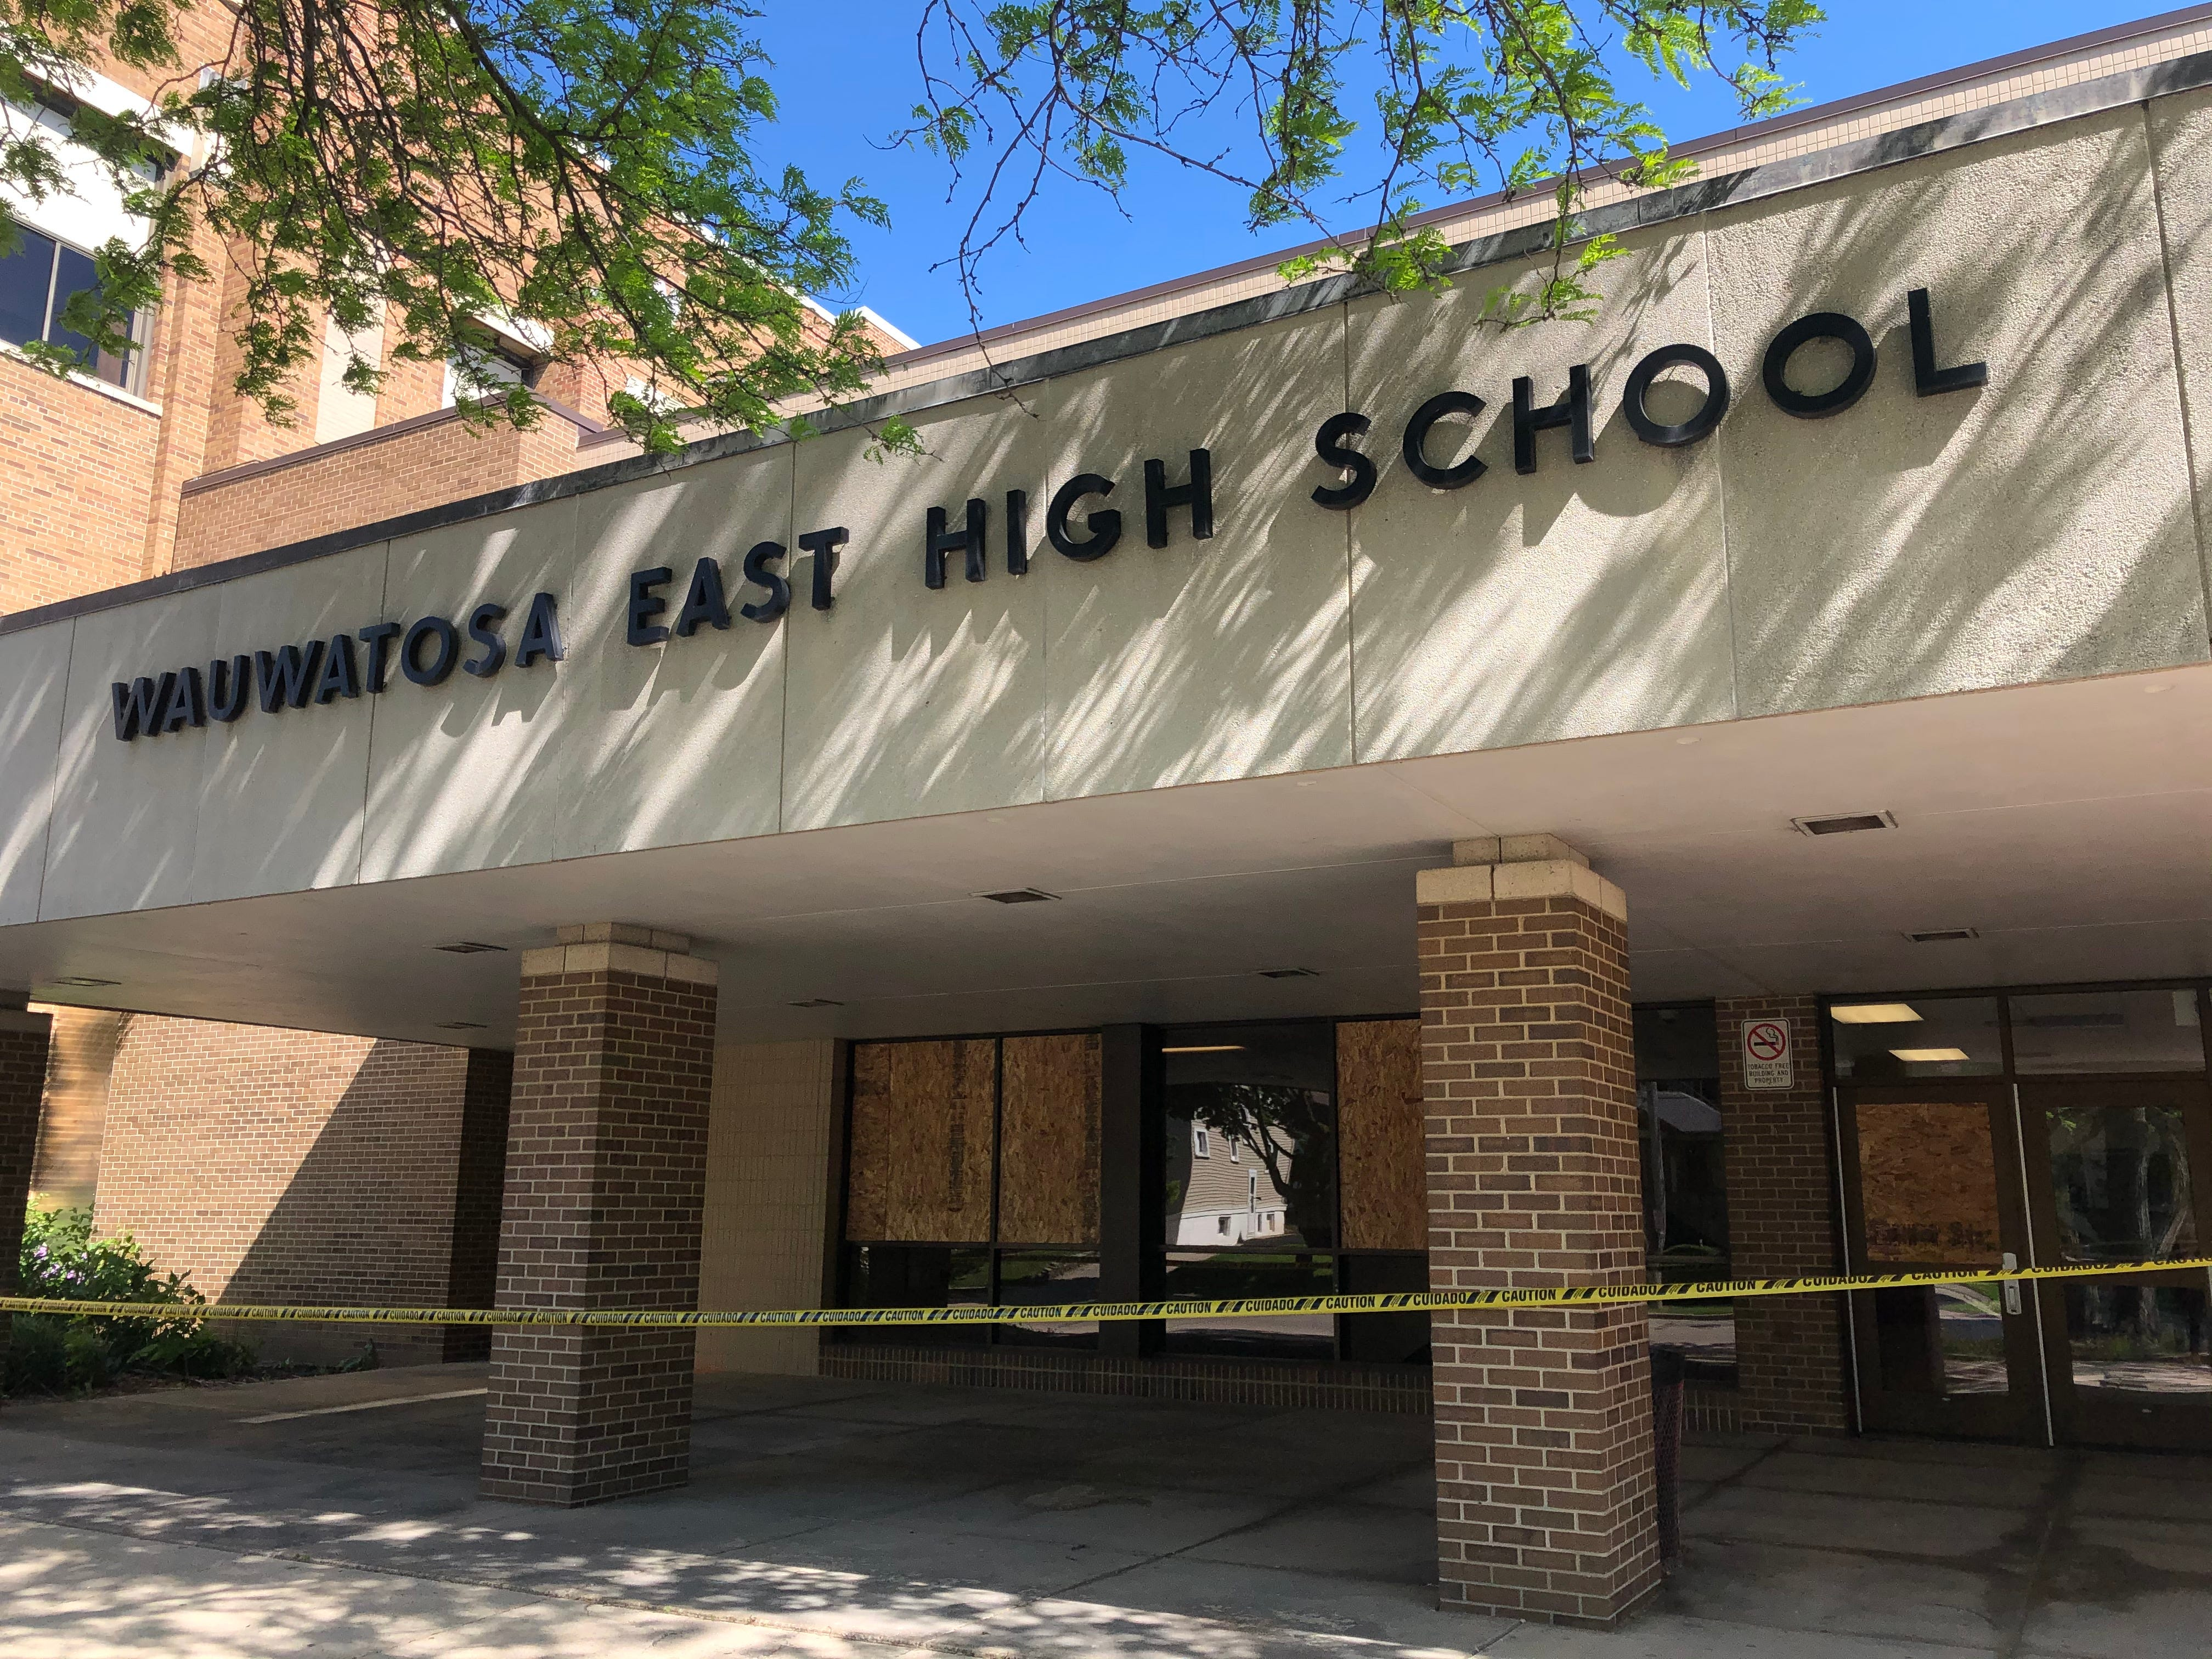 Wauwatosa East High School Windows Smashed As City Was Under Curfew